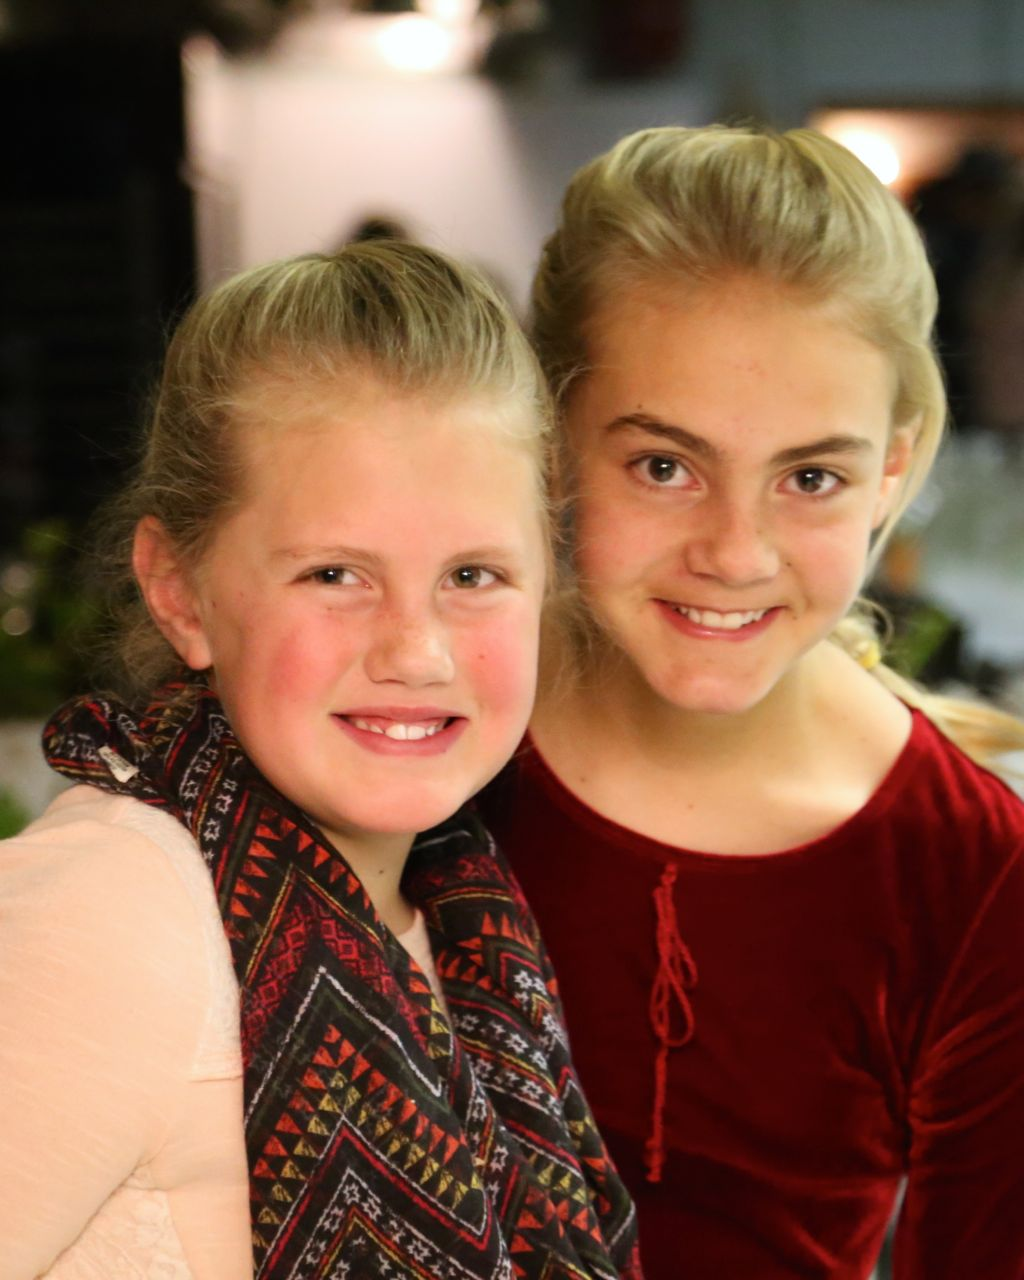 - Every banquet needs a couple of hostesses to ensure that the event goes well. Kiersten and Julia helped manage that.